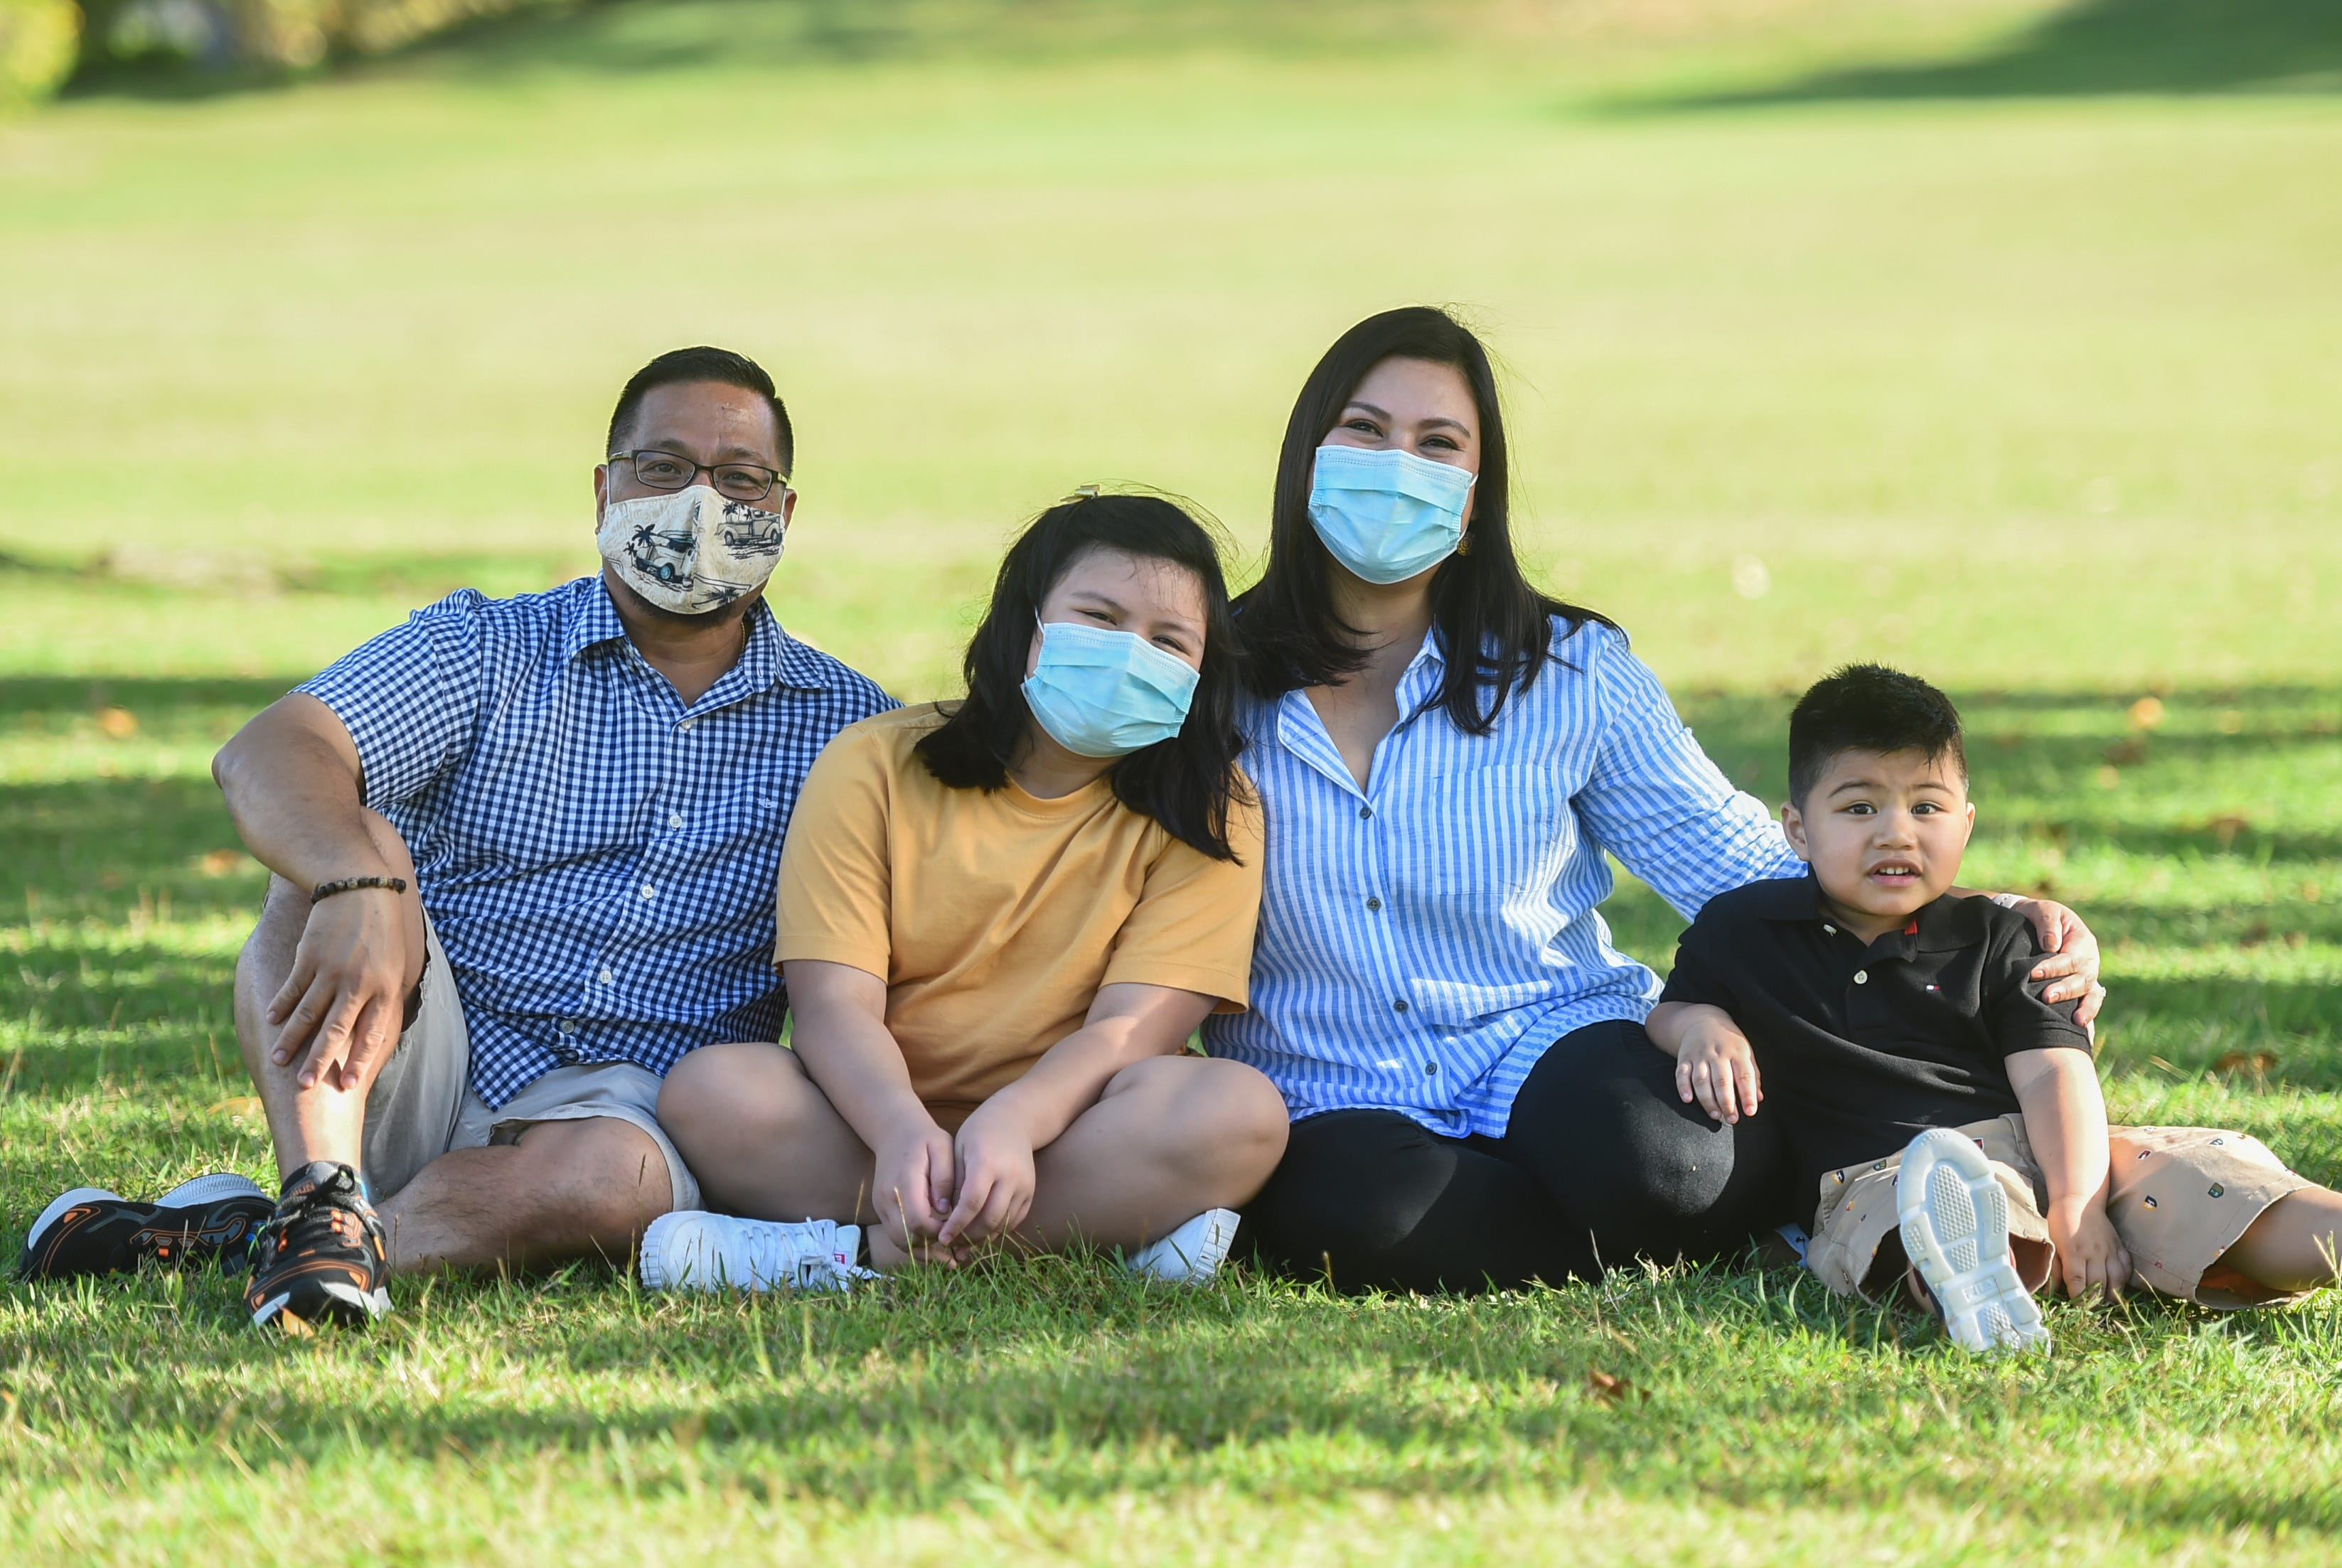 Patrick and Jenny Luces with their children, Patrick Jordan Luces, 3, and Samantha De Leon, 10, at Gov. Joseph Flores Beach Park in Tumon, March 19, 2021.